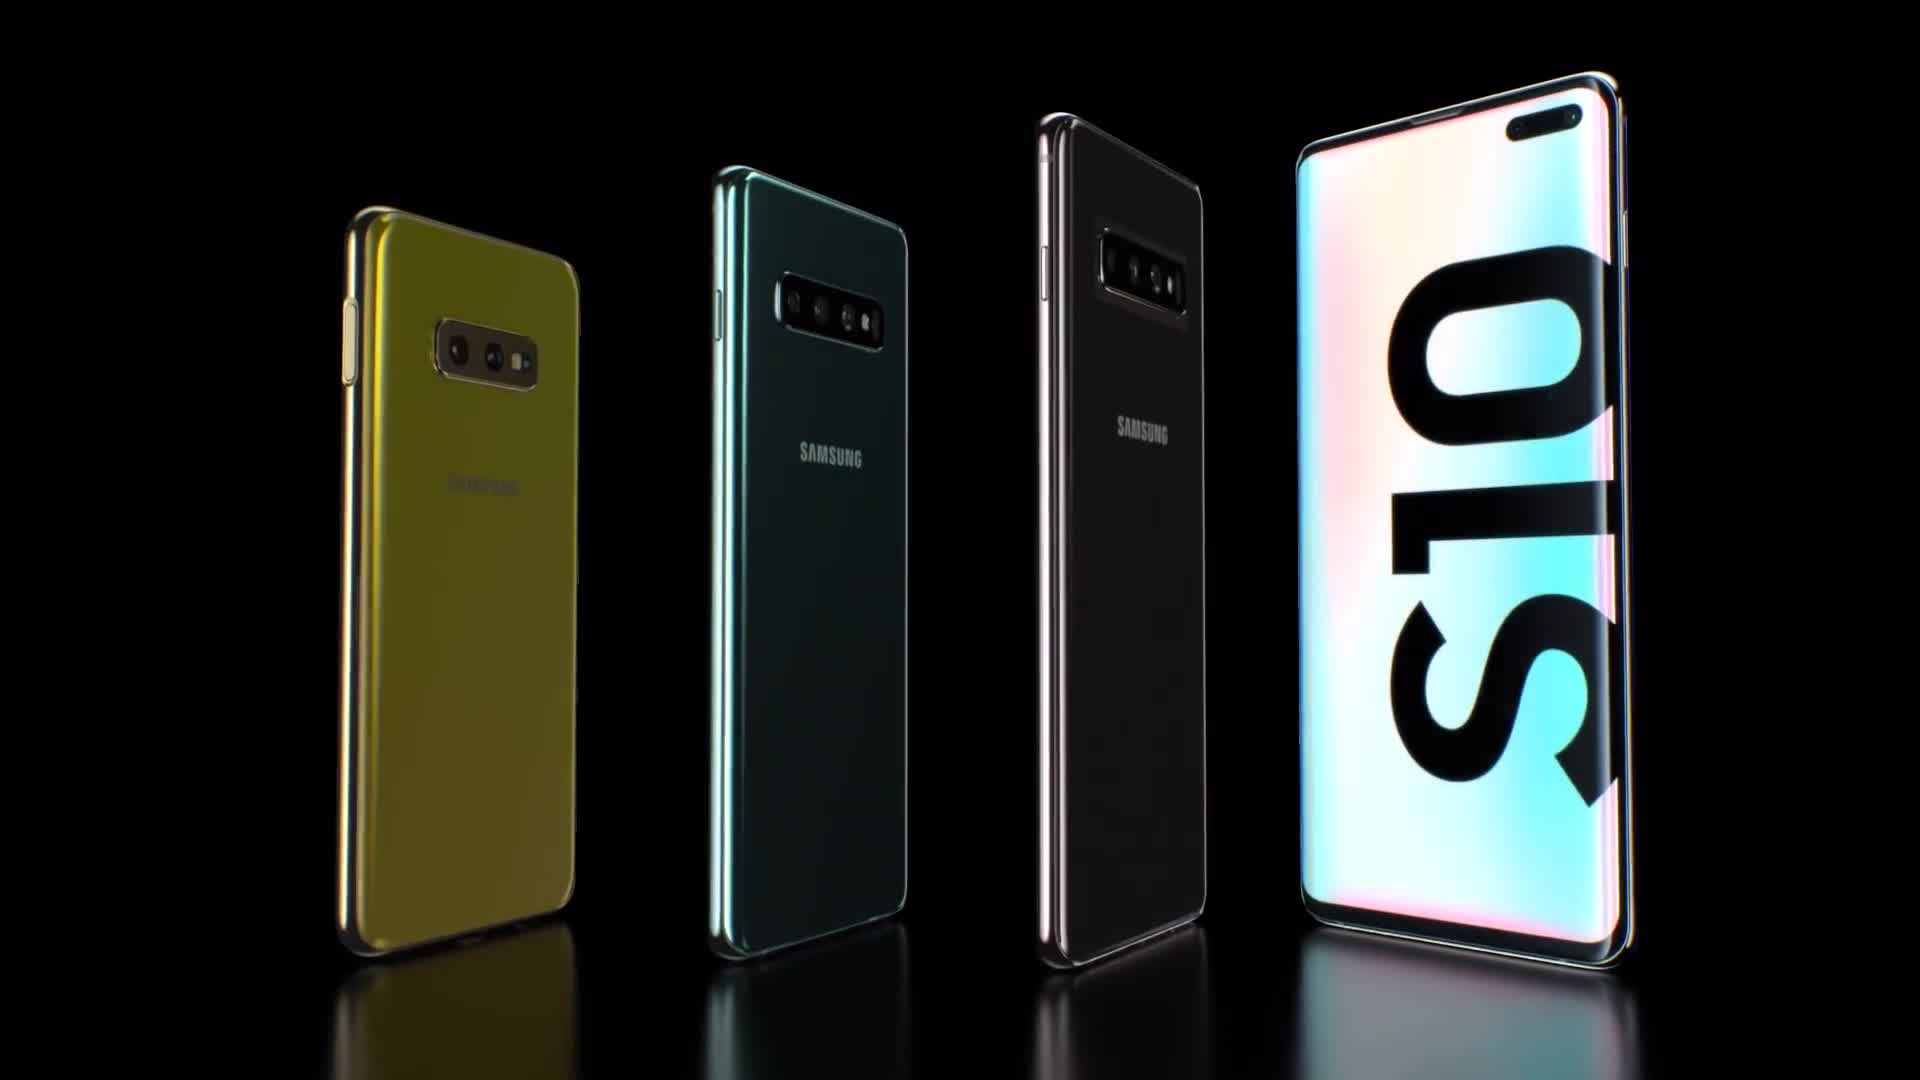 Smartphone, Android, Samsung, Samsung Galaxy, Galaxy, Samsung Mobile, Samsung Galaxy S10, Galaxy S10, S10